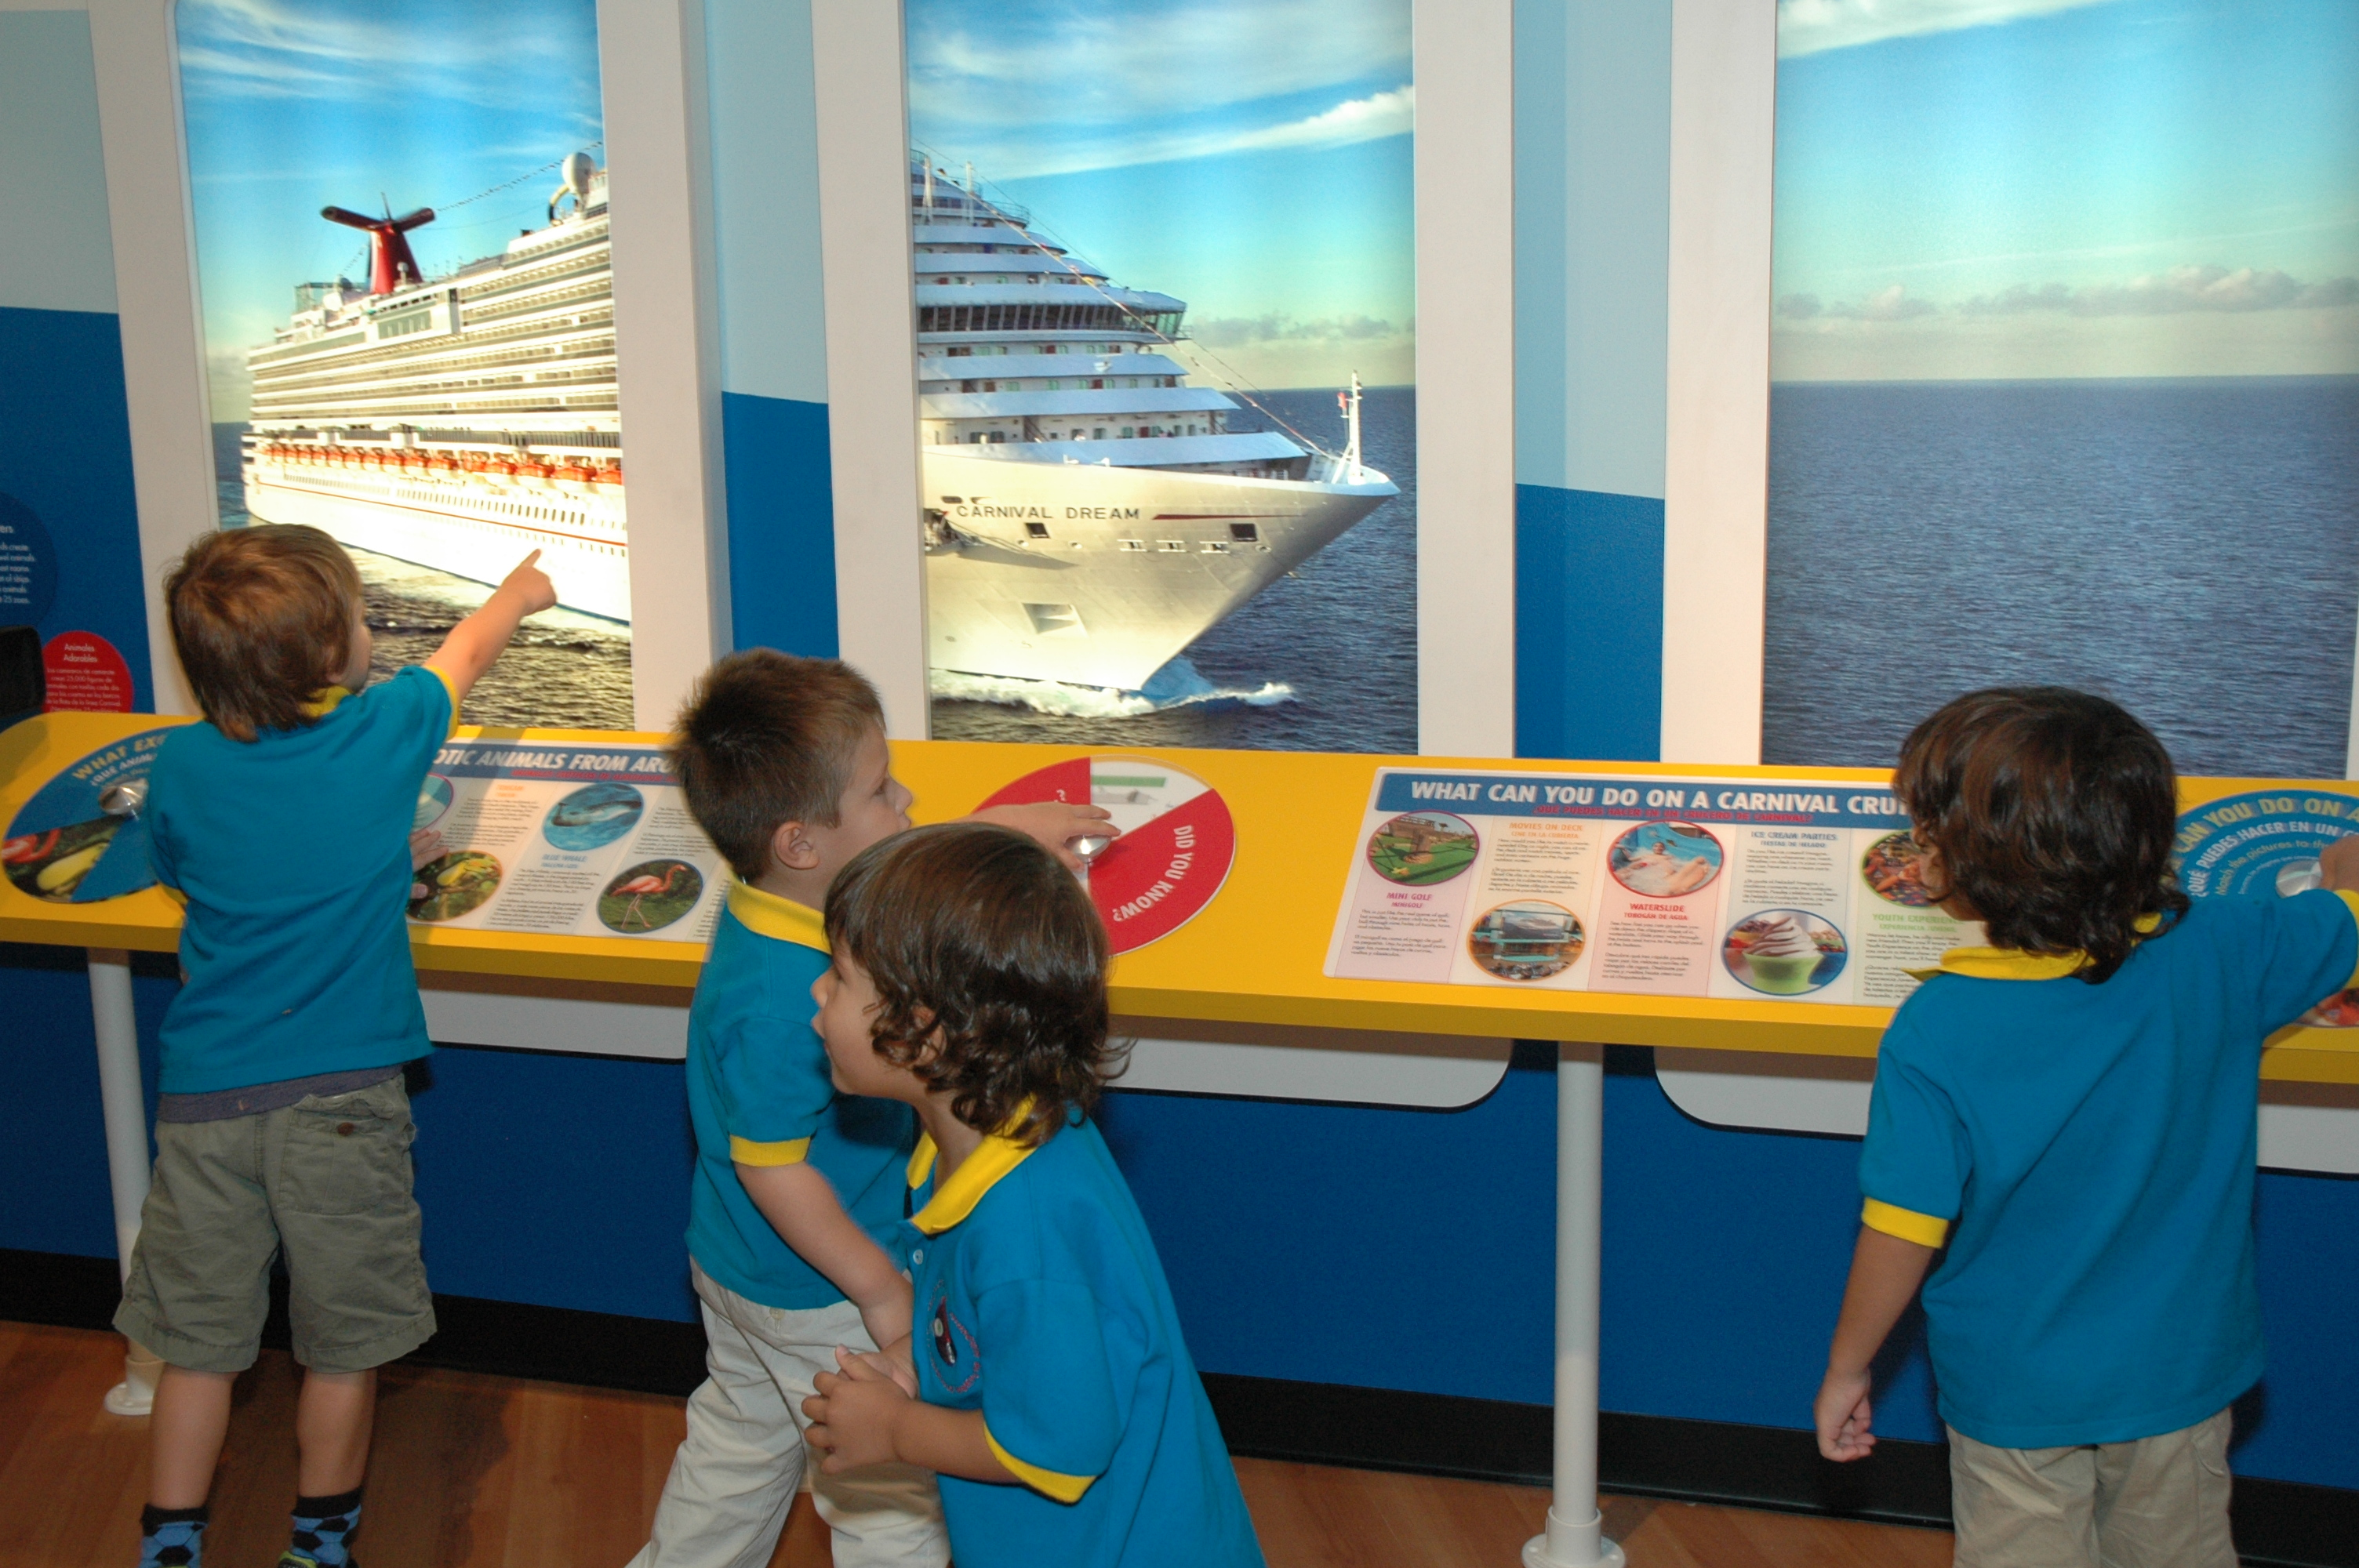 Carnival S Cruise Ship Themed Exhibit Sets Sail At Miami Children S Museum With Host Of New